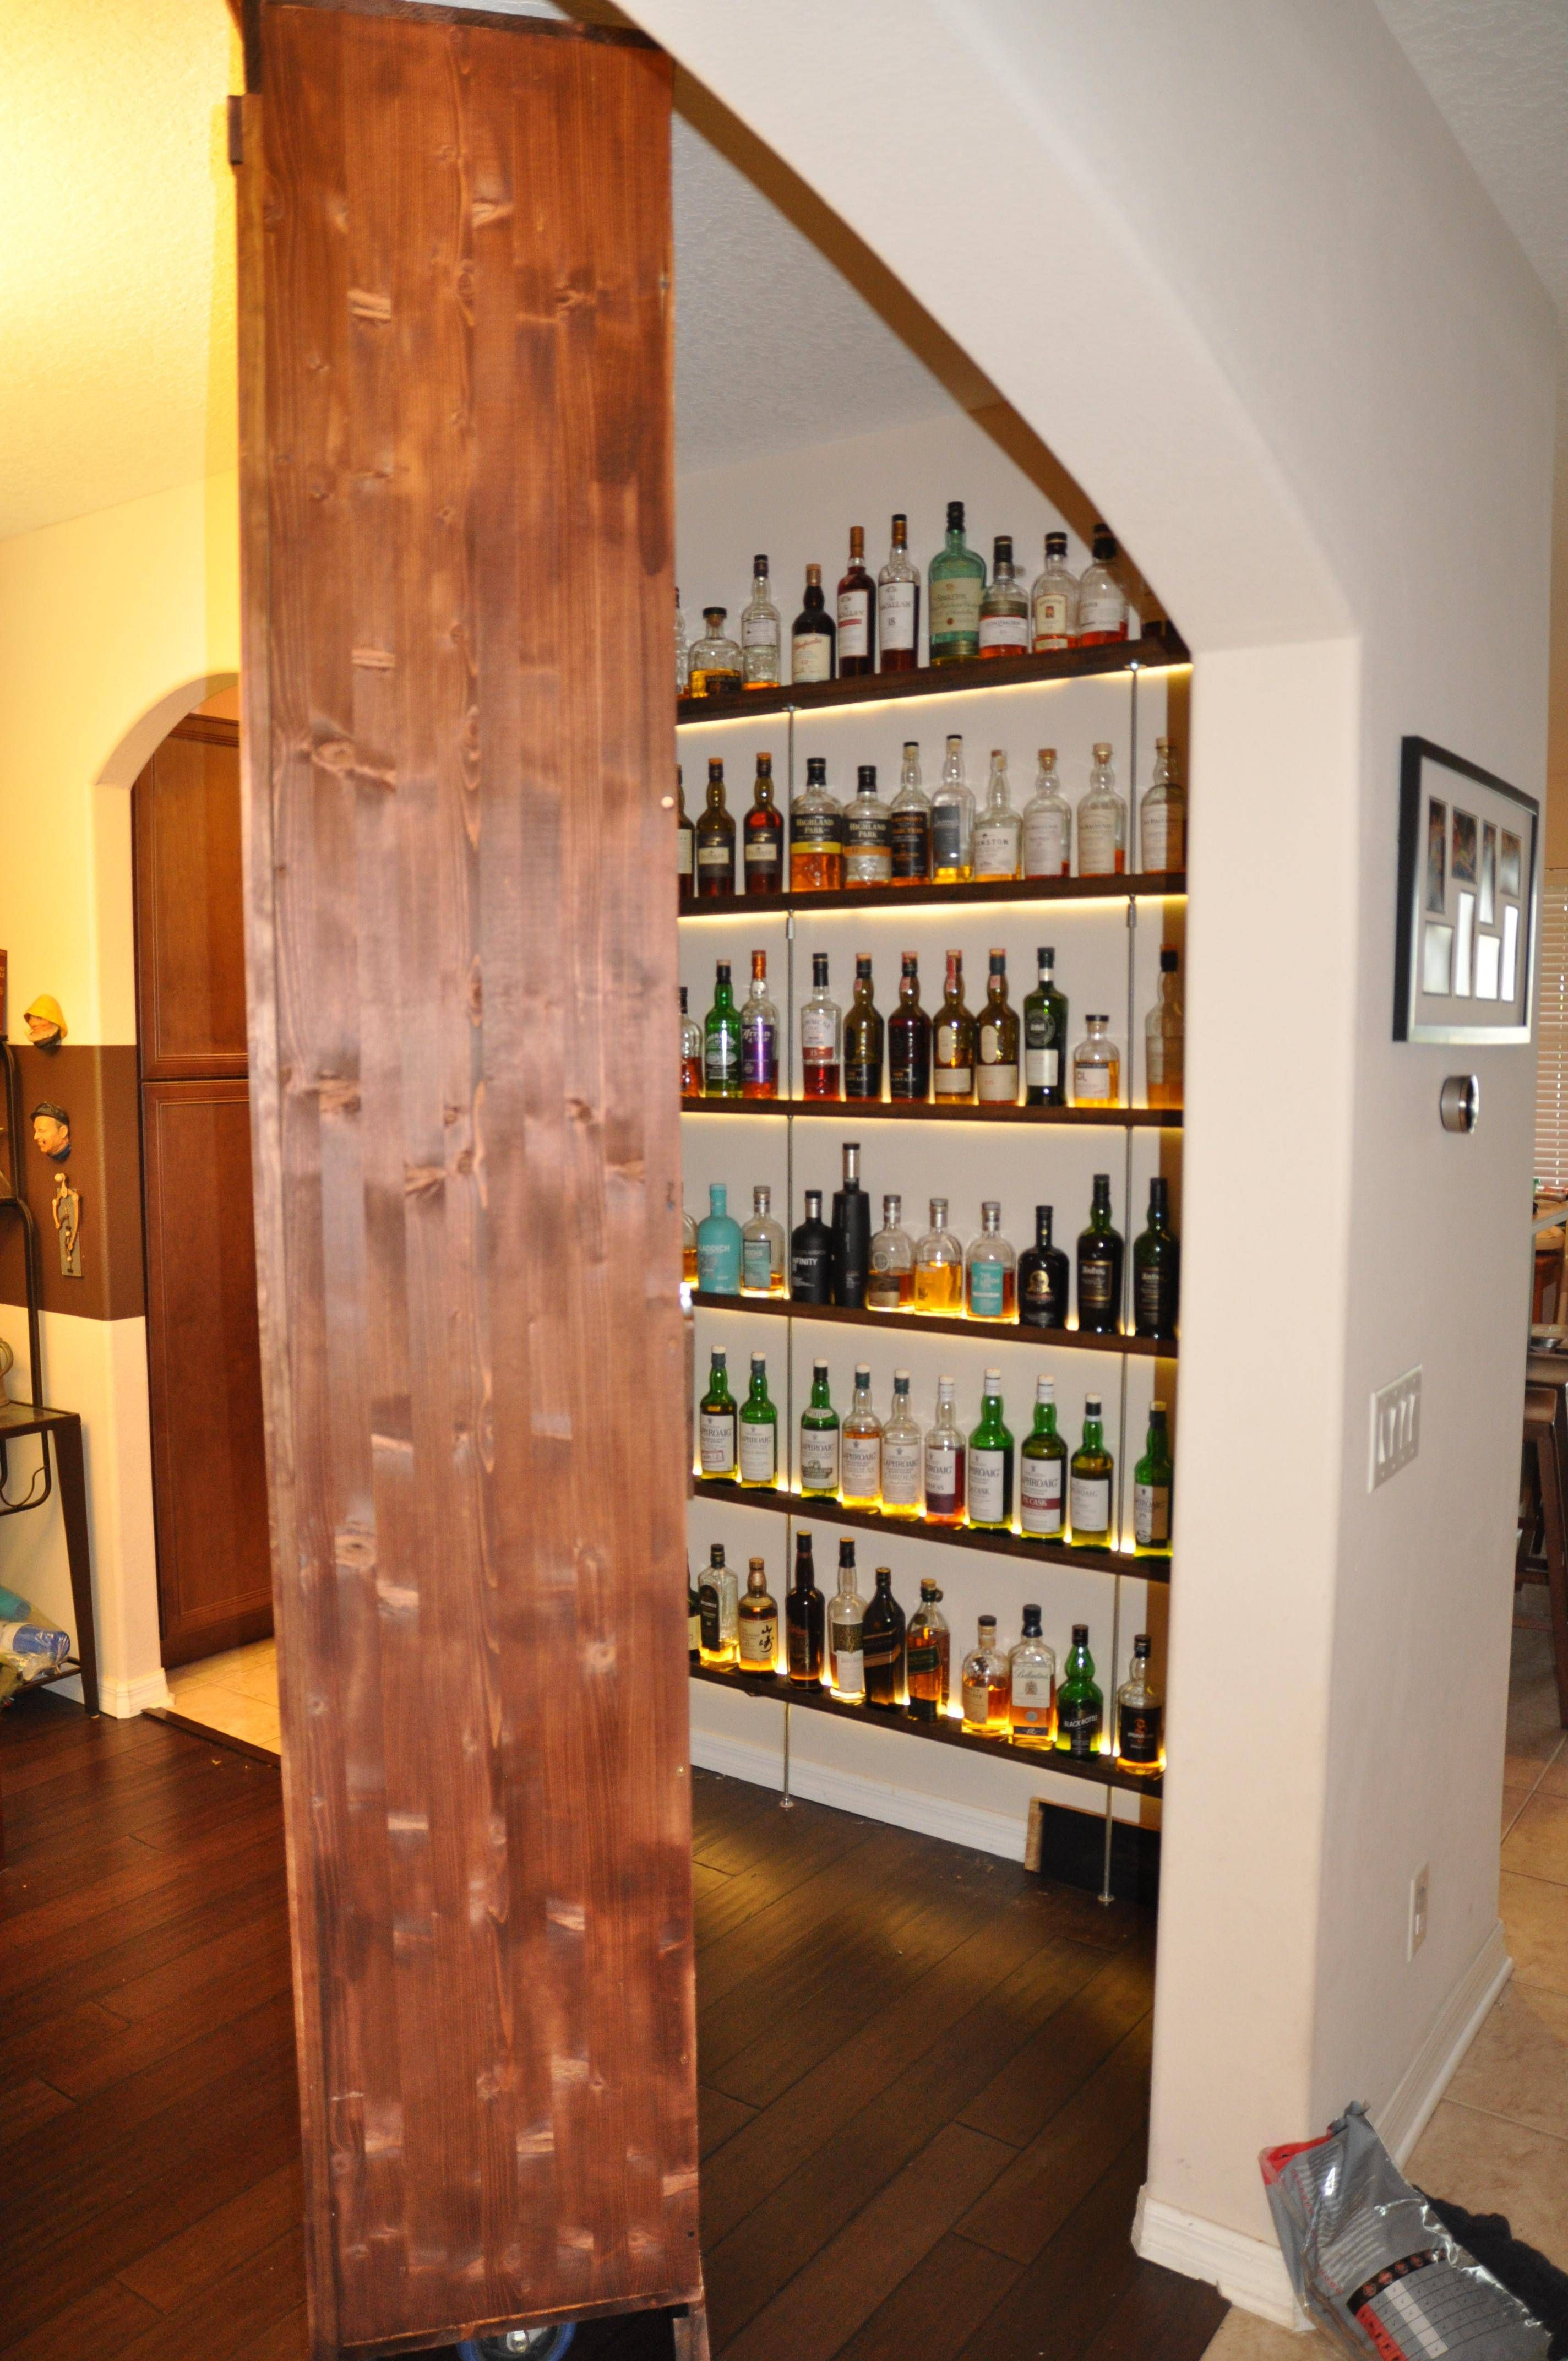 Superbe Hiding Behind This Bookcase Is A Brilliant Way To Conceal Alcohol